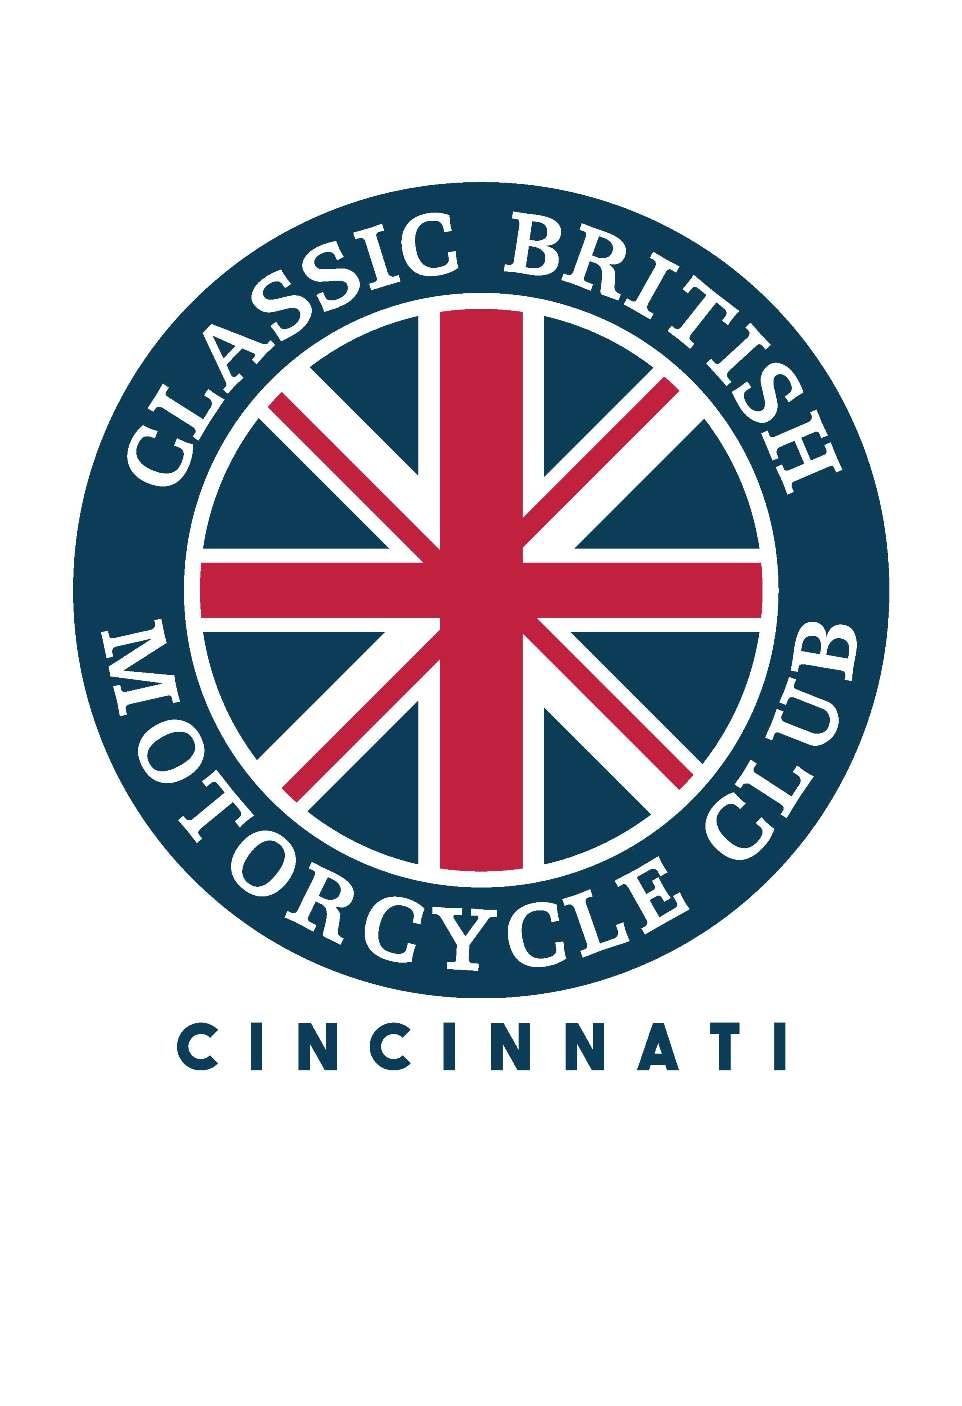 The Classic British Motorcycle Club of Cincinnati